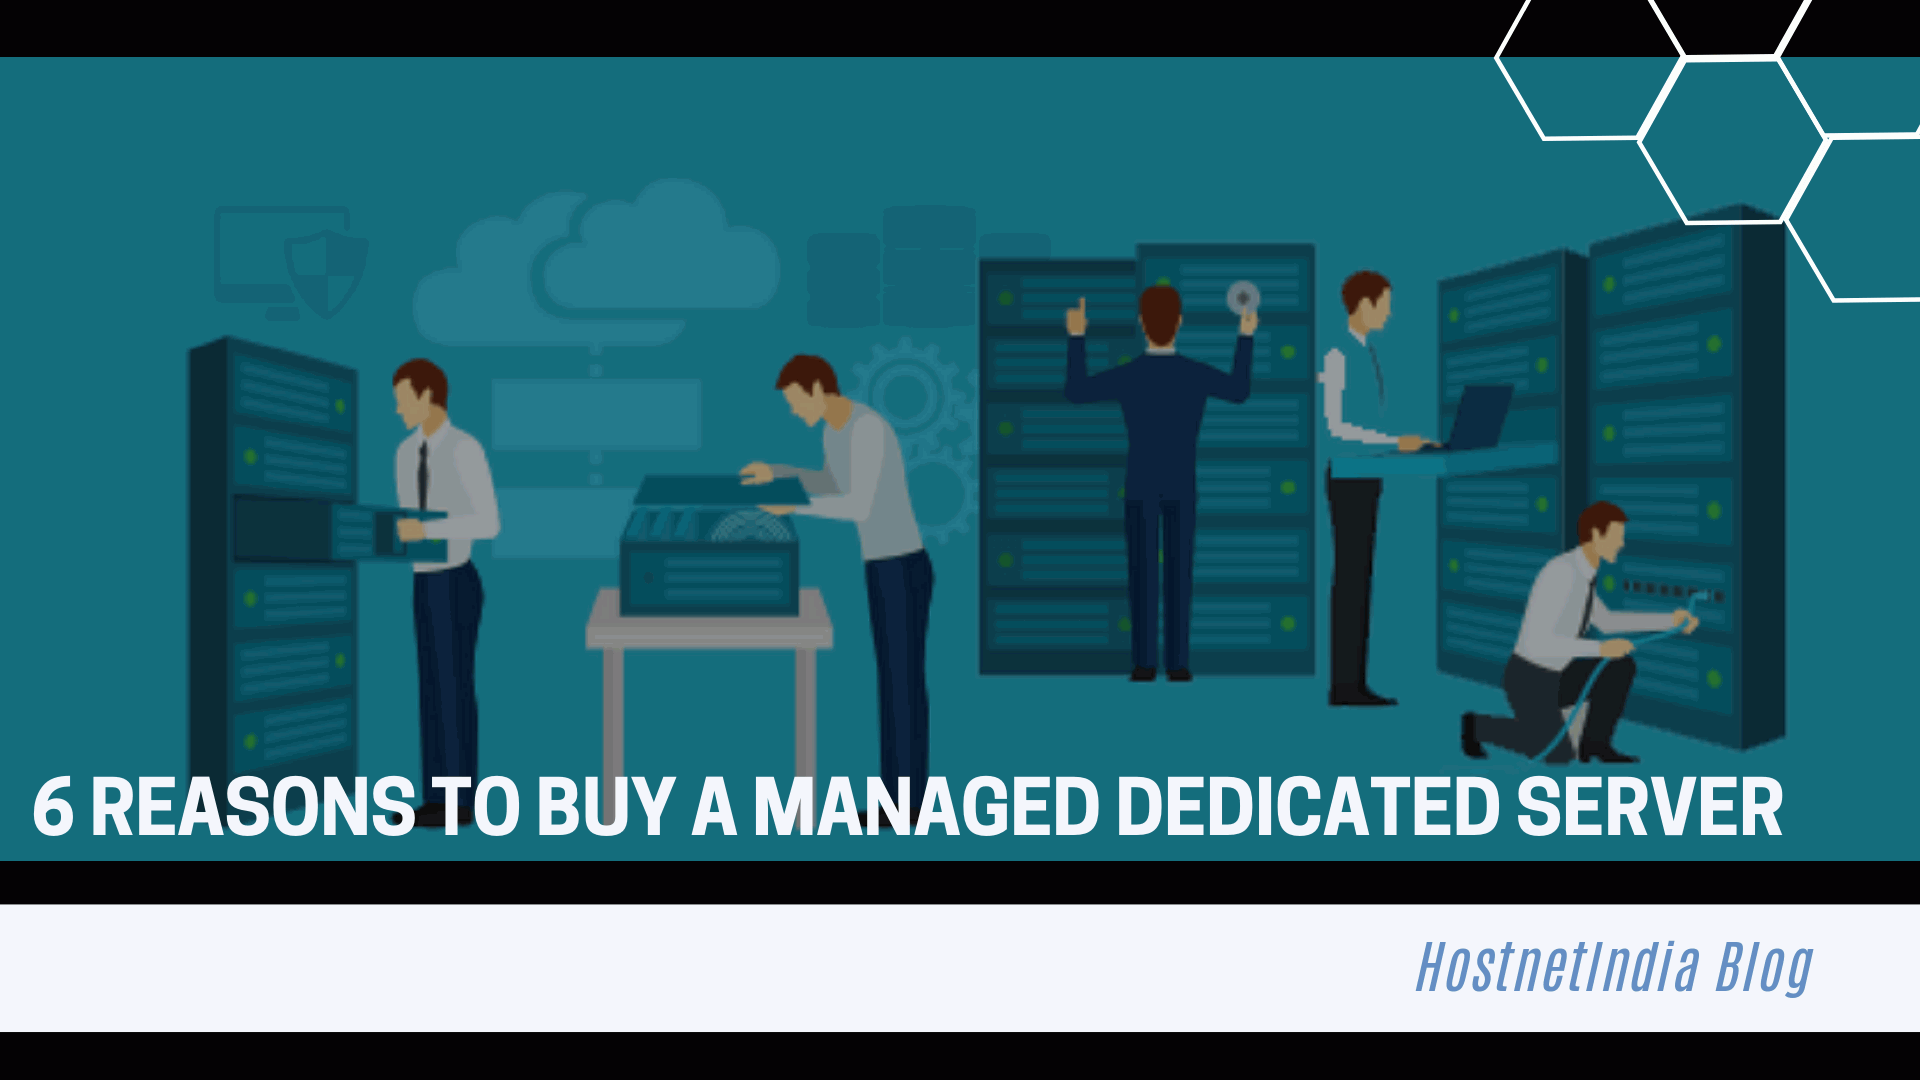 Reasons to buy a Managed Dedicated Server